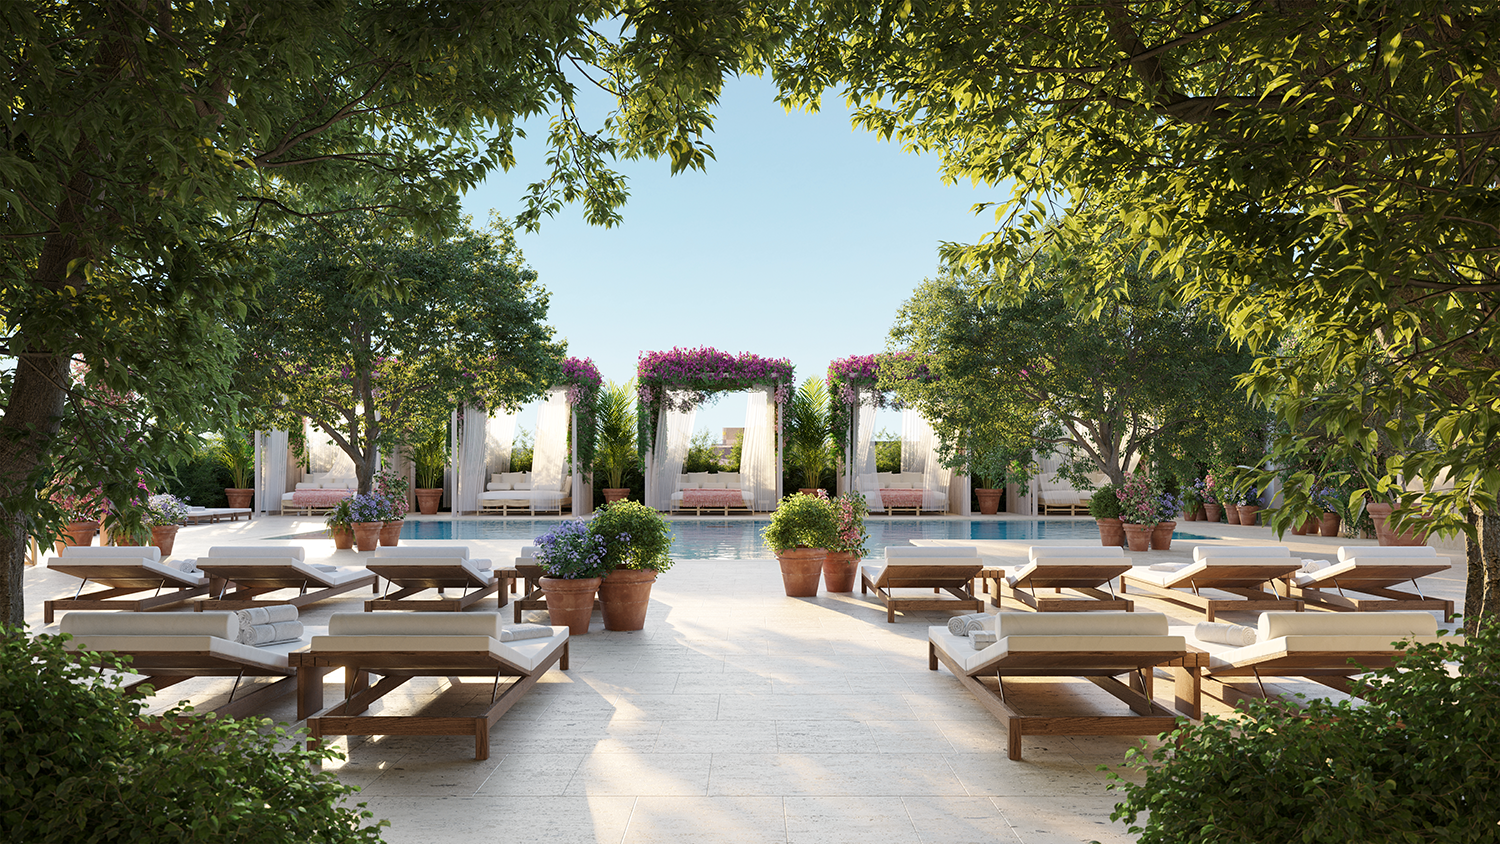 The Pool Terrace with lush landscaping and greenery at The Residences at The Tampa EDITION